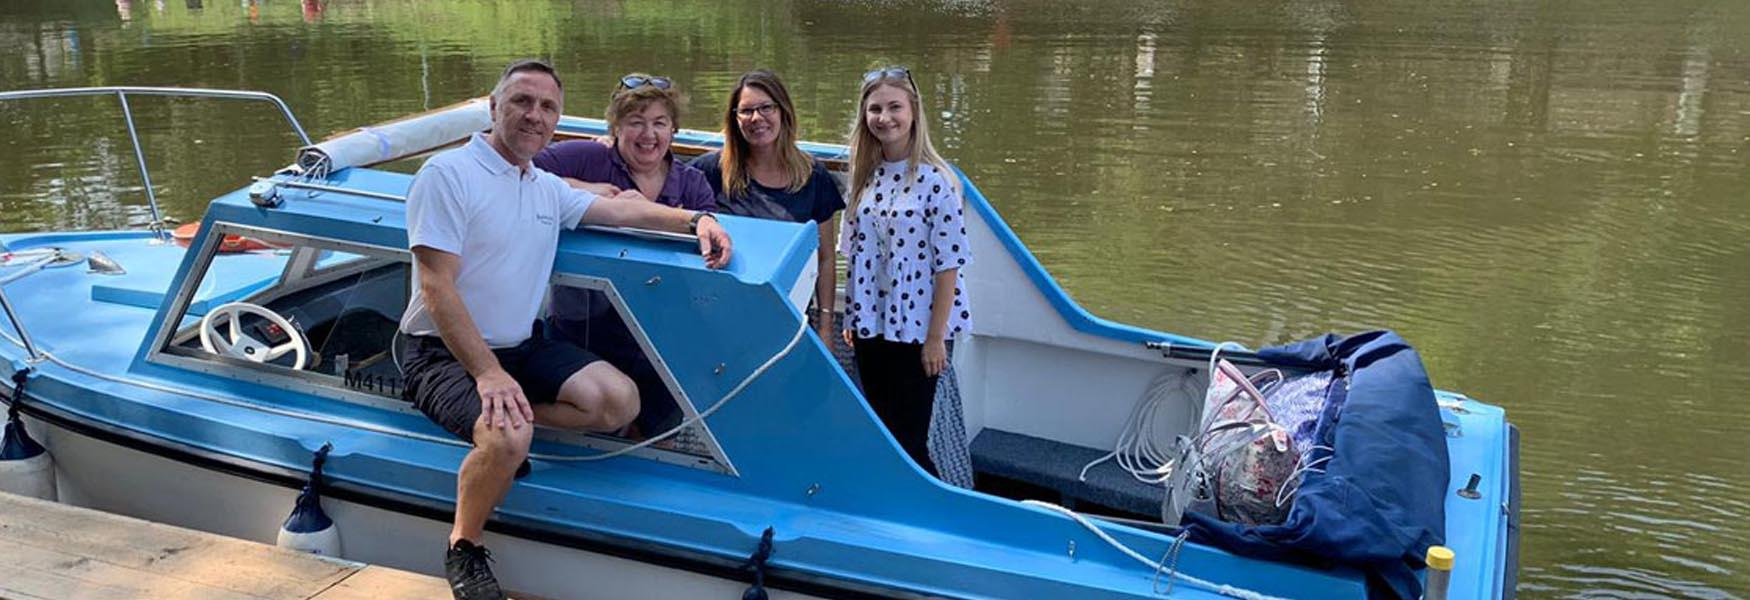 Brand New in 2019 - Self-drive boat hire for all the family